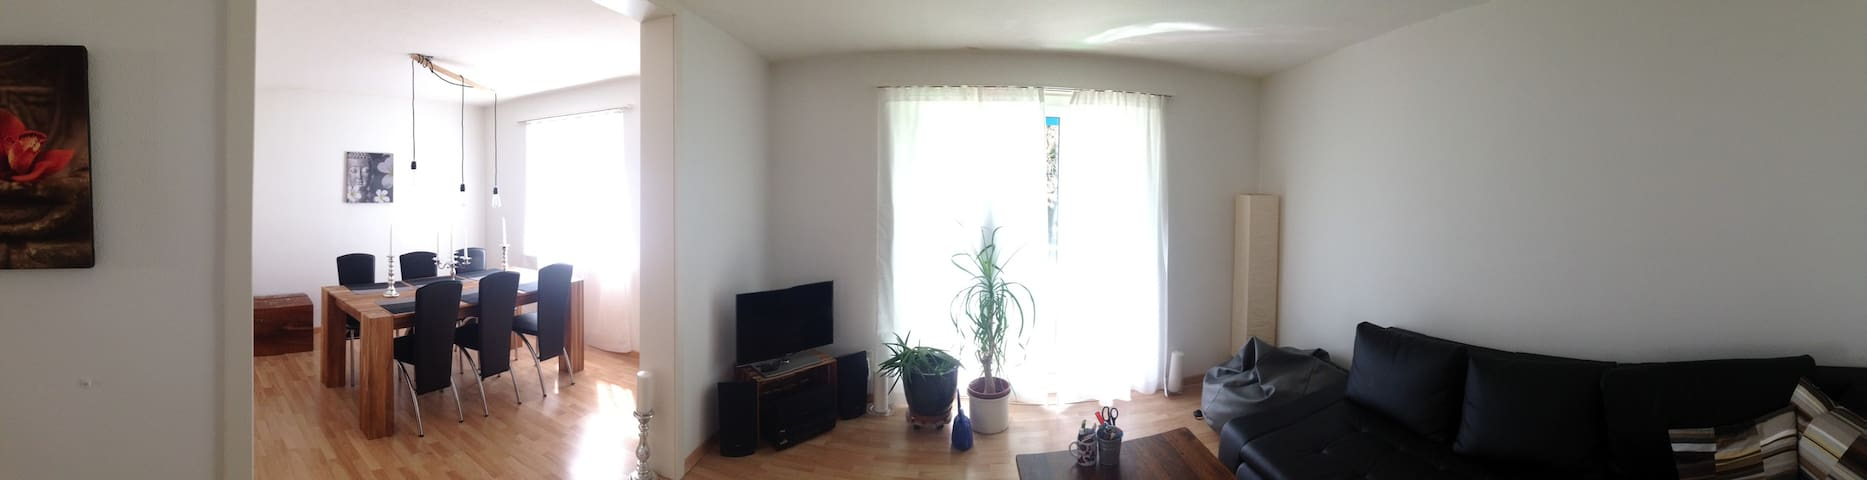 3.5 room appartment in Baar - Baar